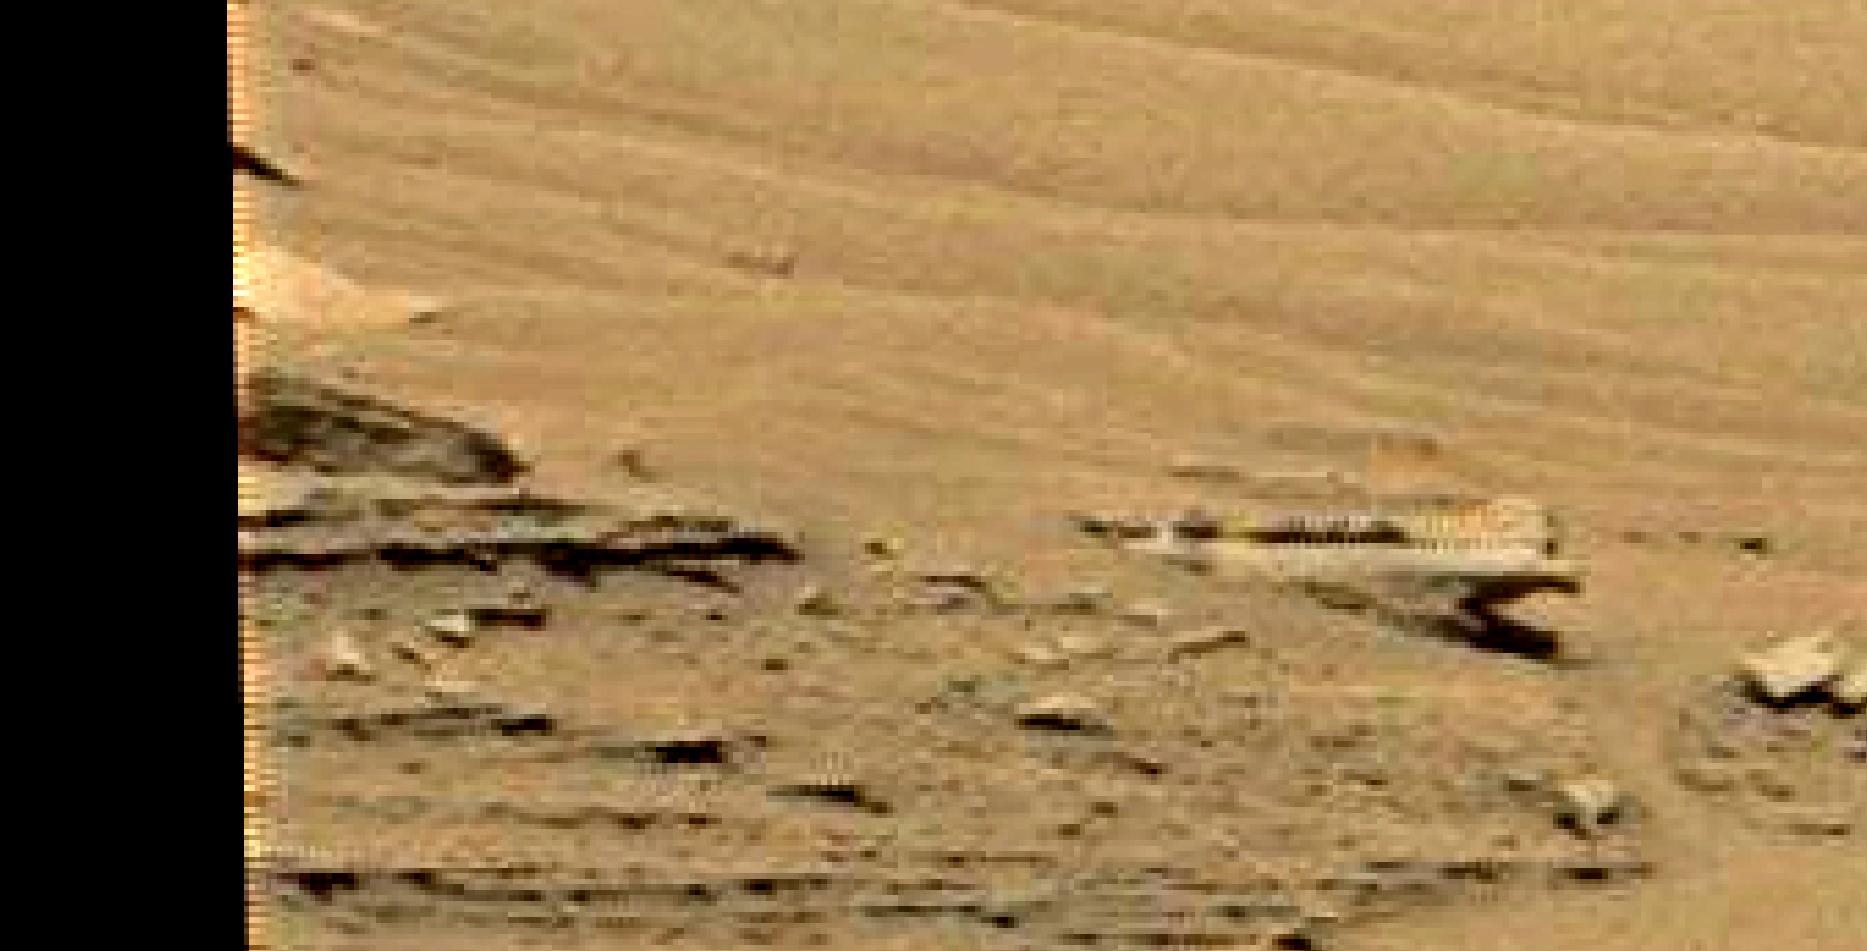 mars sol 1353 anomaly-artifacts 1 was life on mars